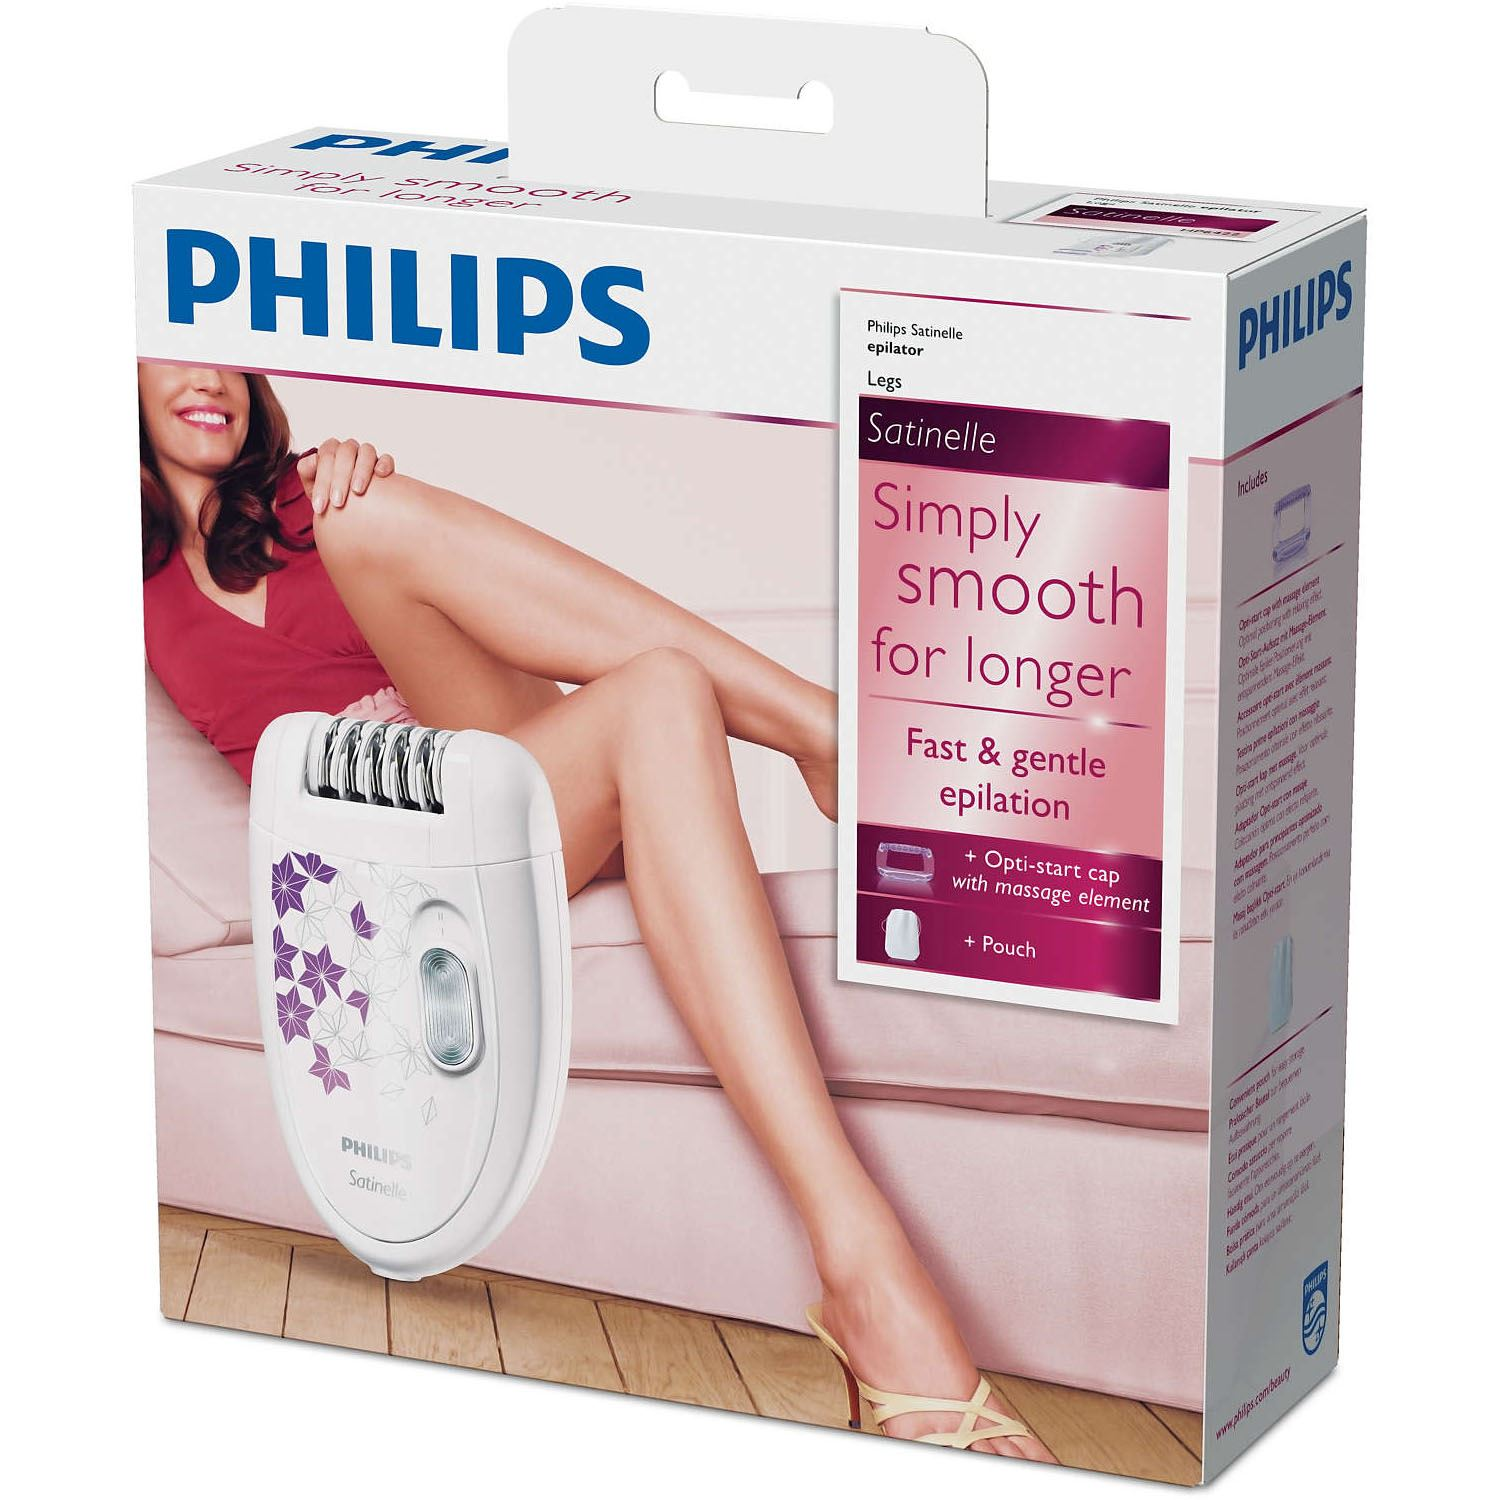 appareil philips pour epilation definitive appareil philips pour epilation definitive philips hp6422. Black Bedroom Furniture Sets. Home Design Ideas